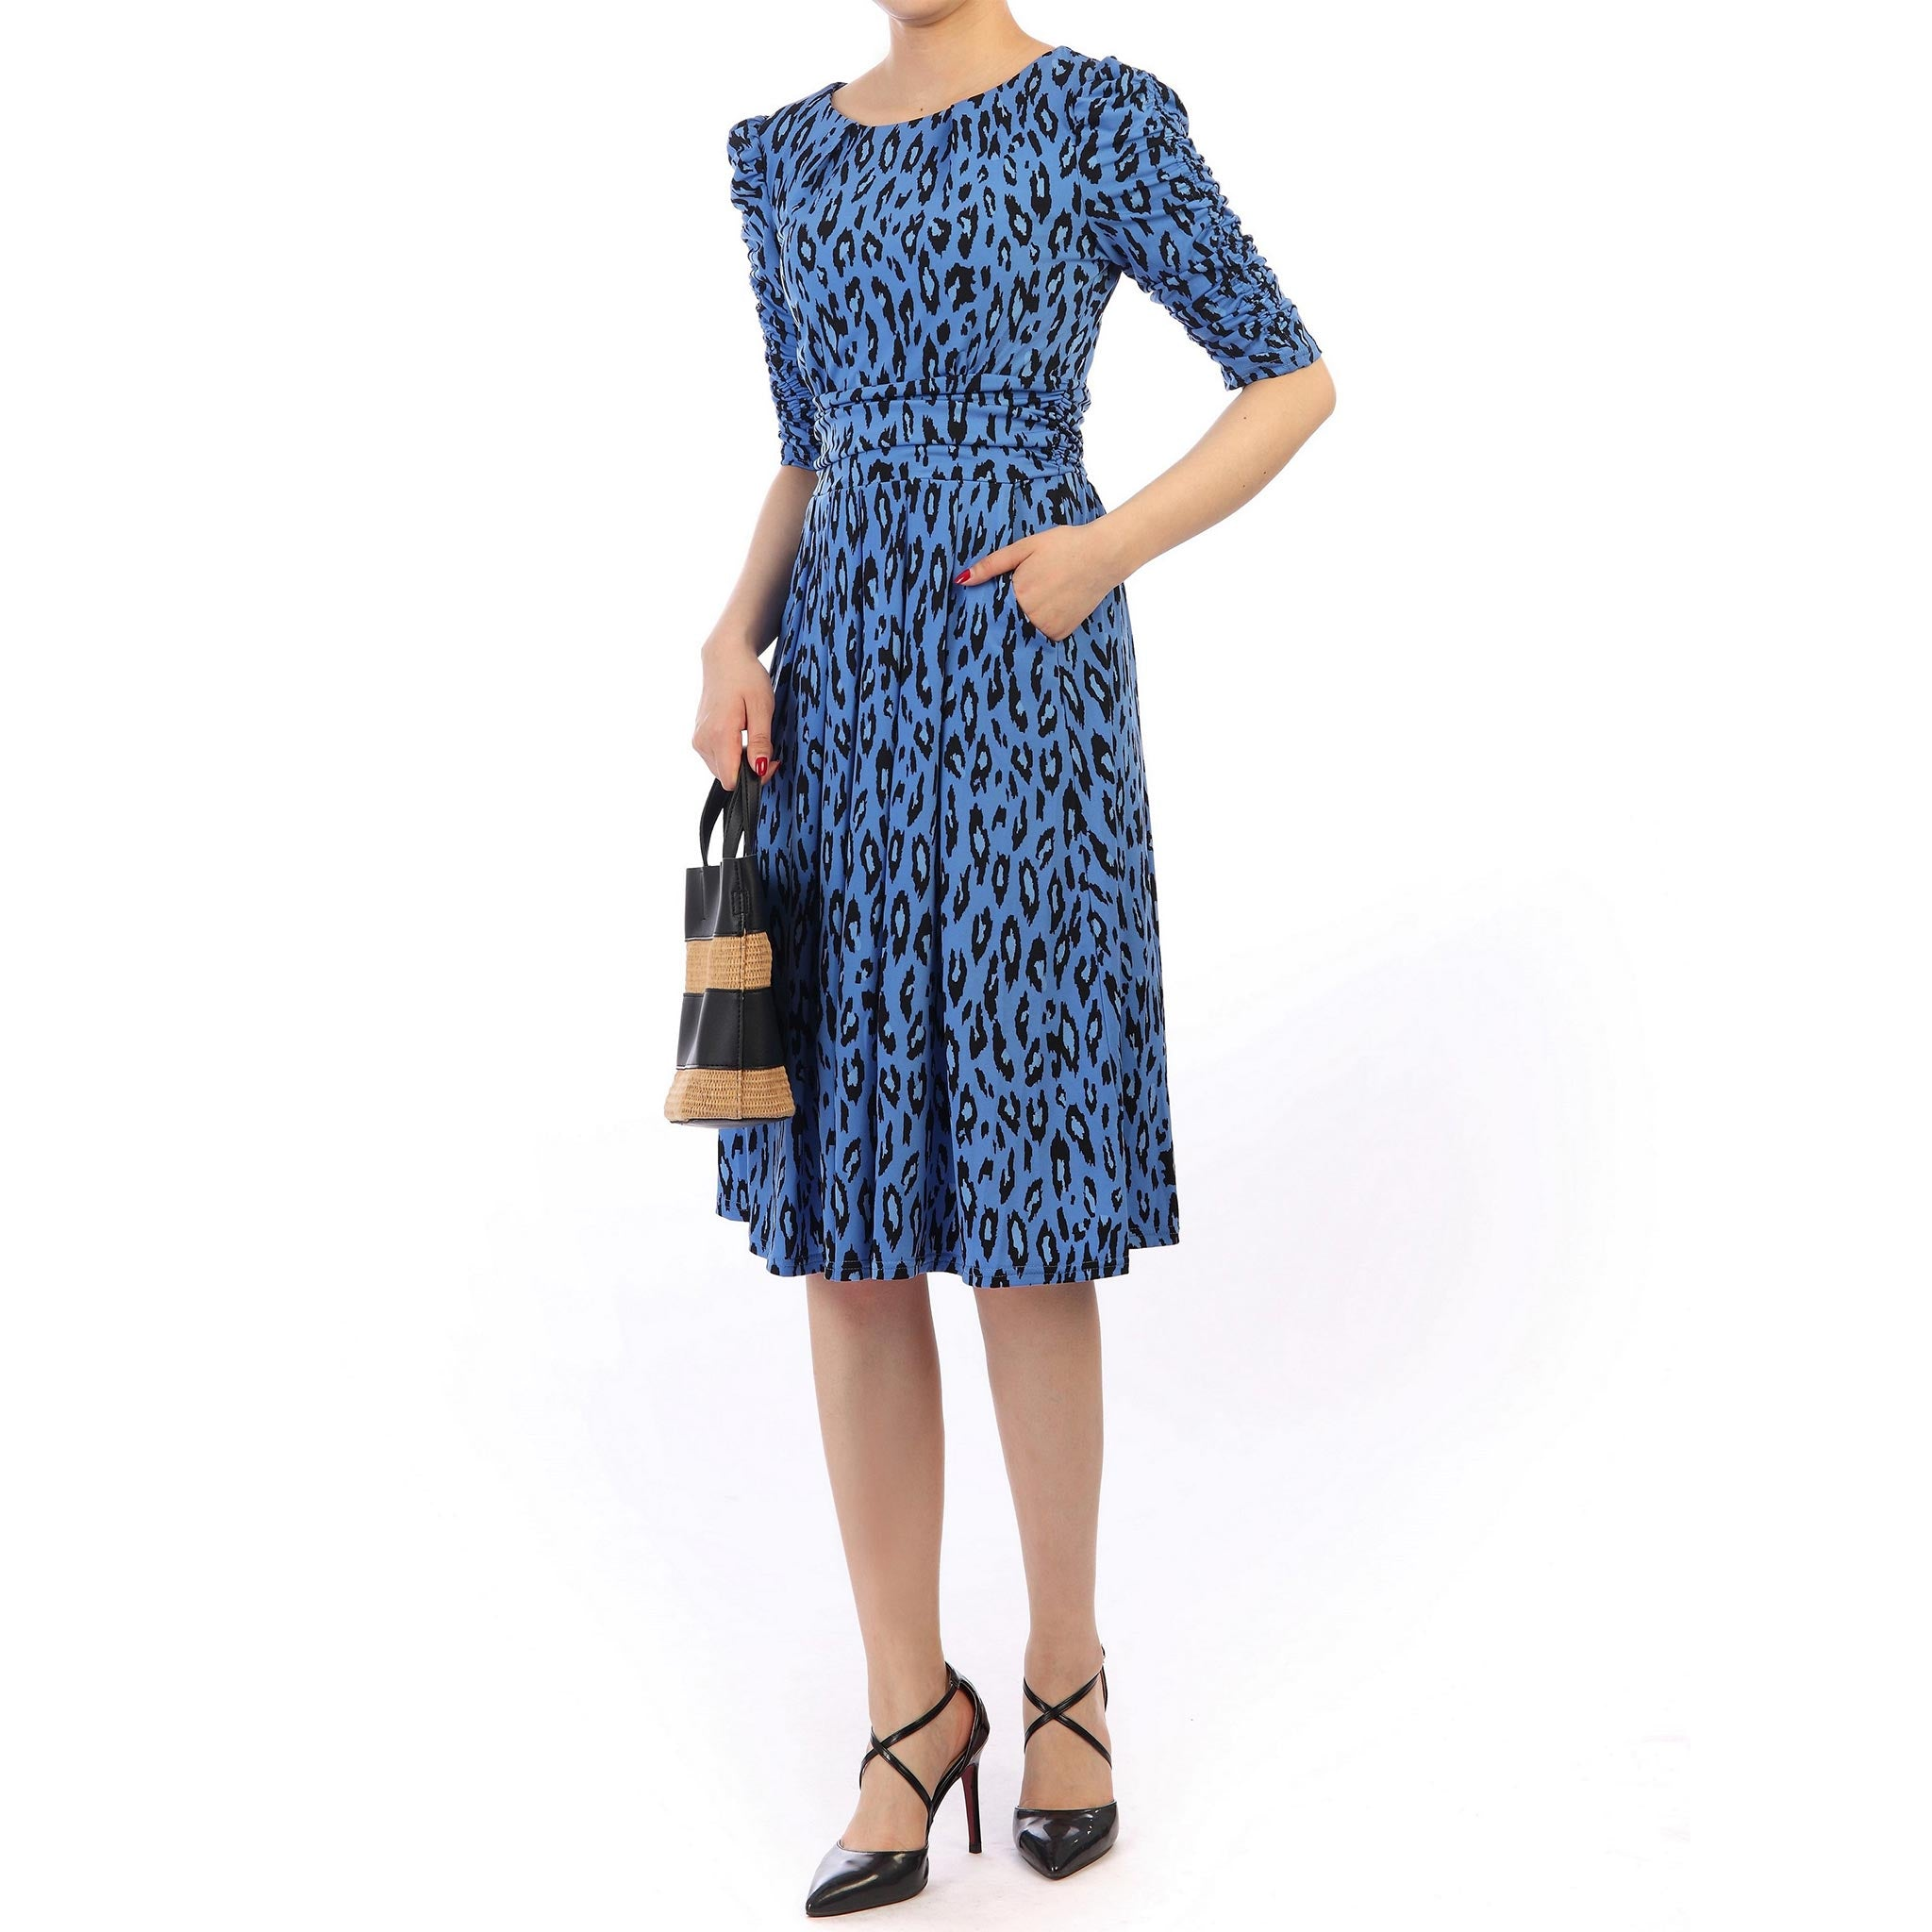 39459c1bb Blue Multi Animal Print Vintage 1940s Gathered Sleeve Tea Dress - Pretty Kitty  Fashion